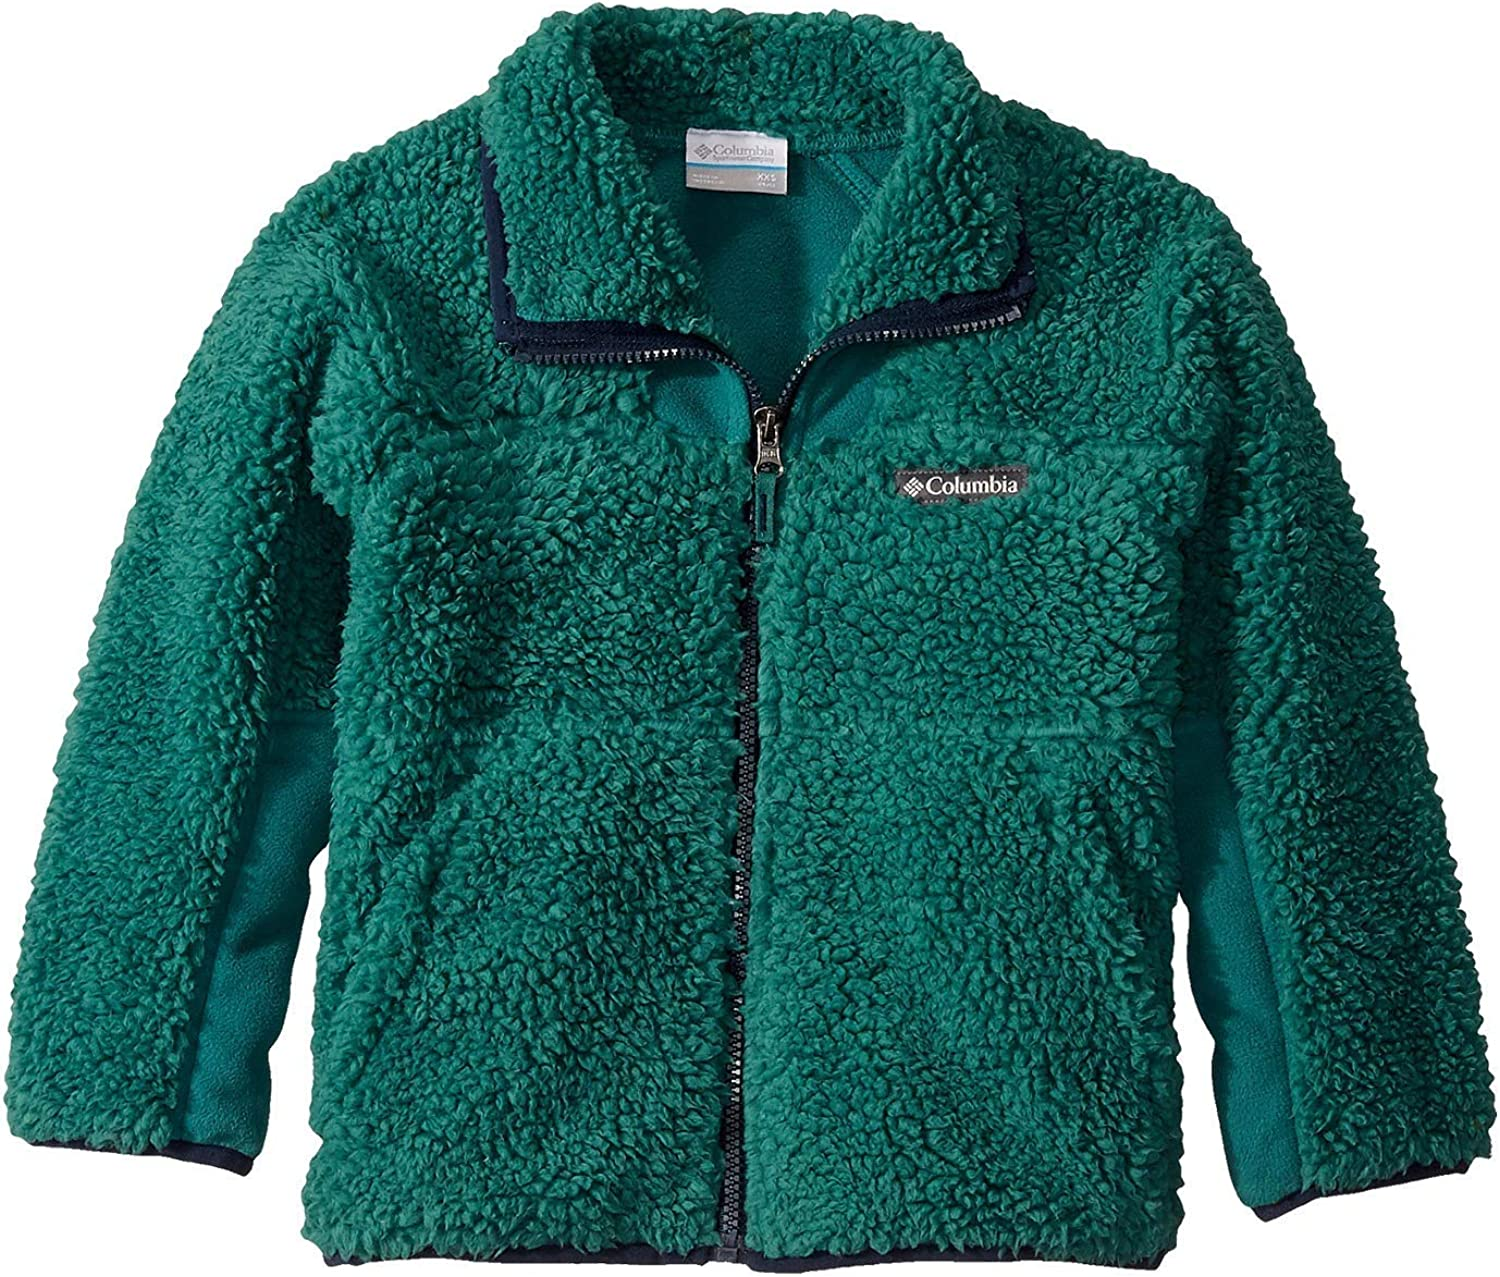 Columbia Youth Winter Pass OFFicial shop Sherpa Fleece Popular brand in the world Zip Jacket Full